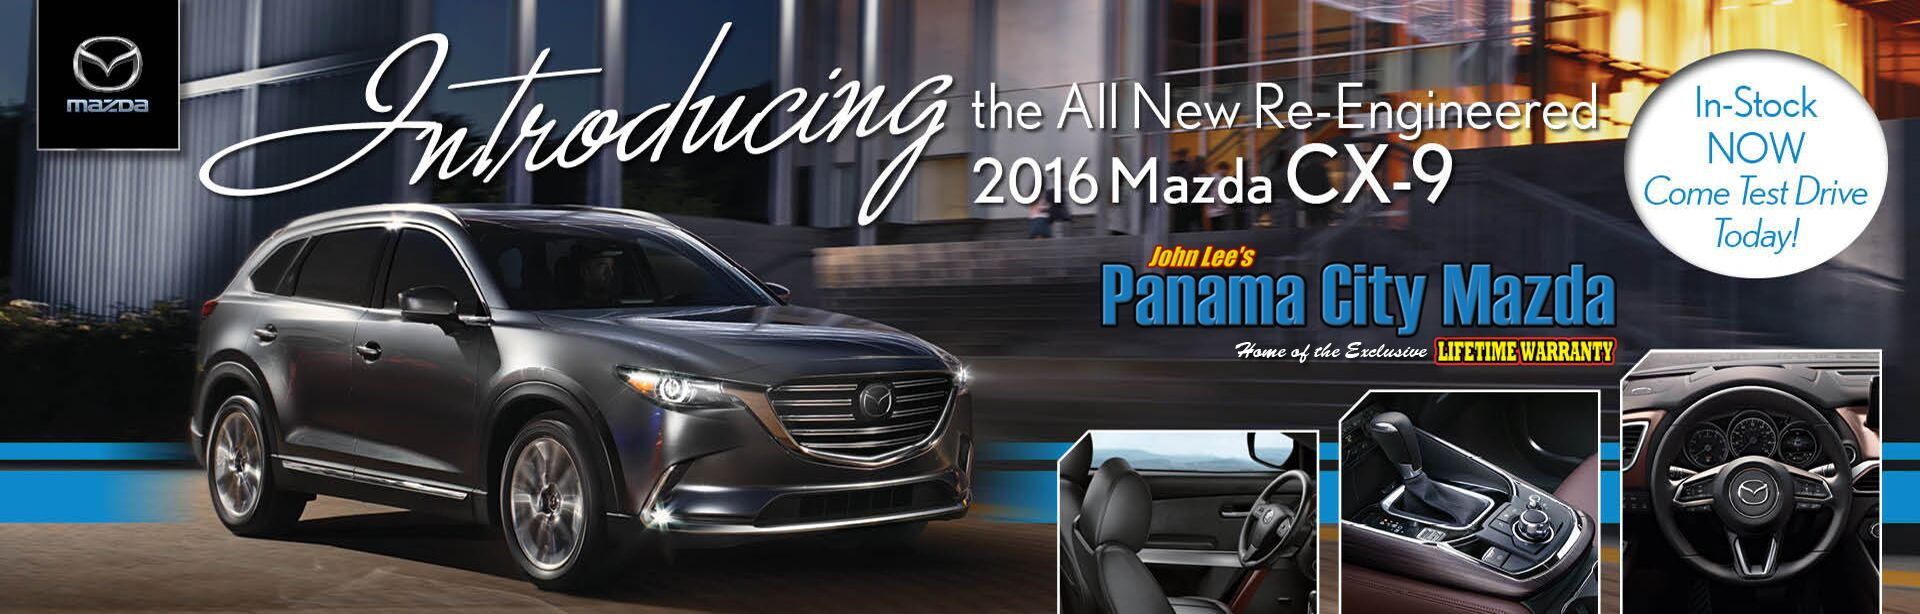 Introducing the all new Mazda CX-9